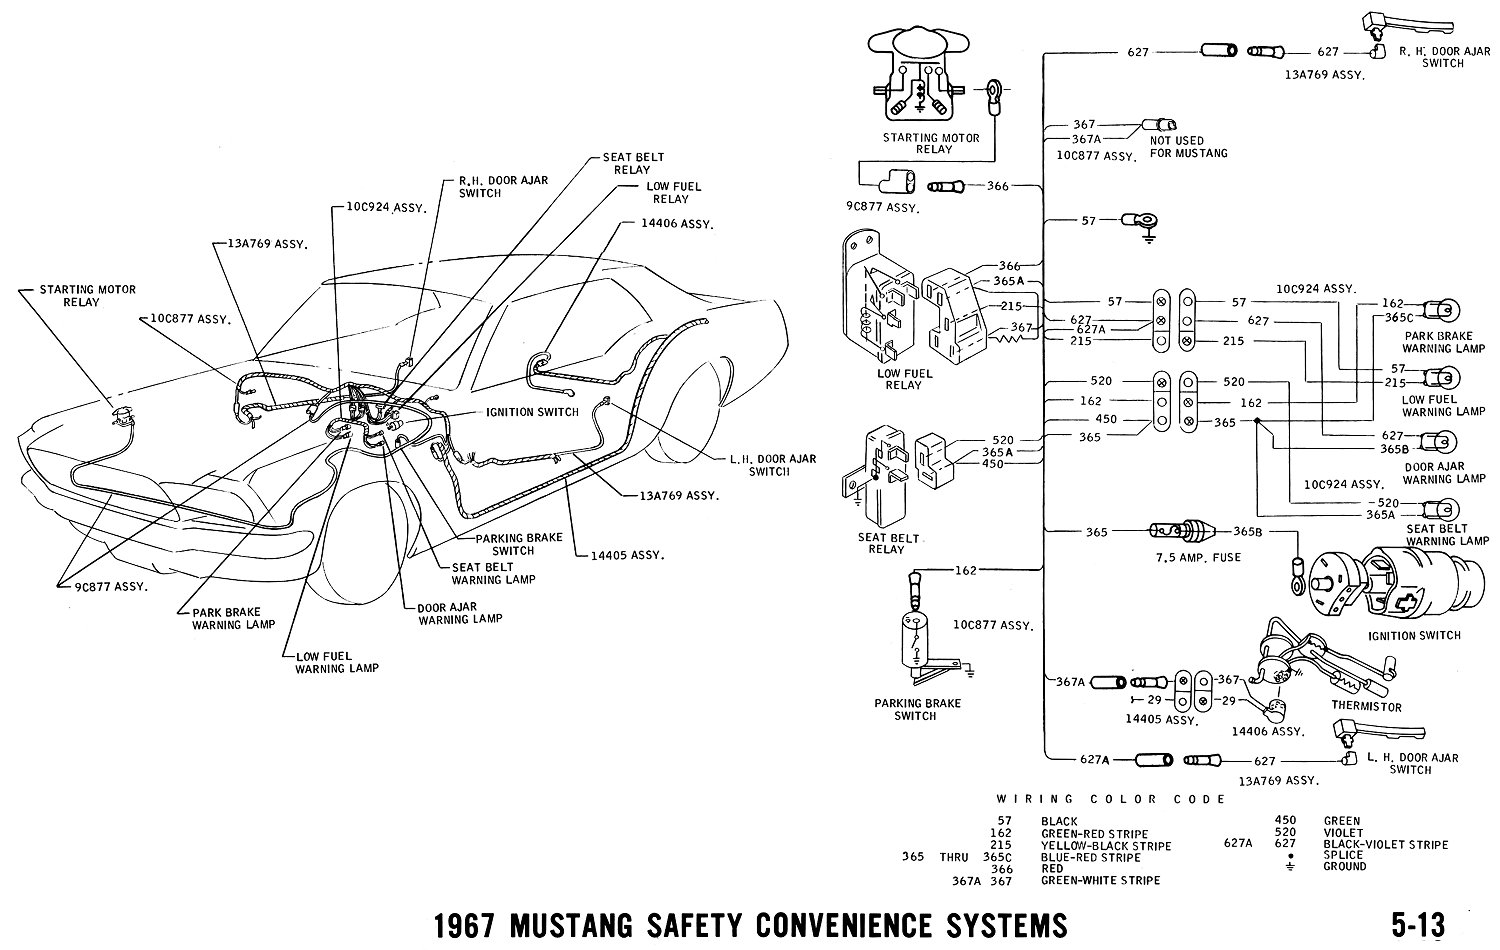 1967 Mustang Wiring And Vacuum Diagrams on 1966 ford mustang color wiring diagram